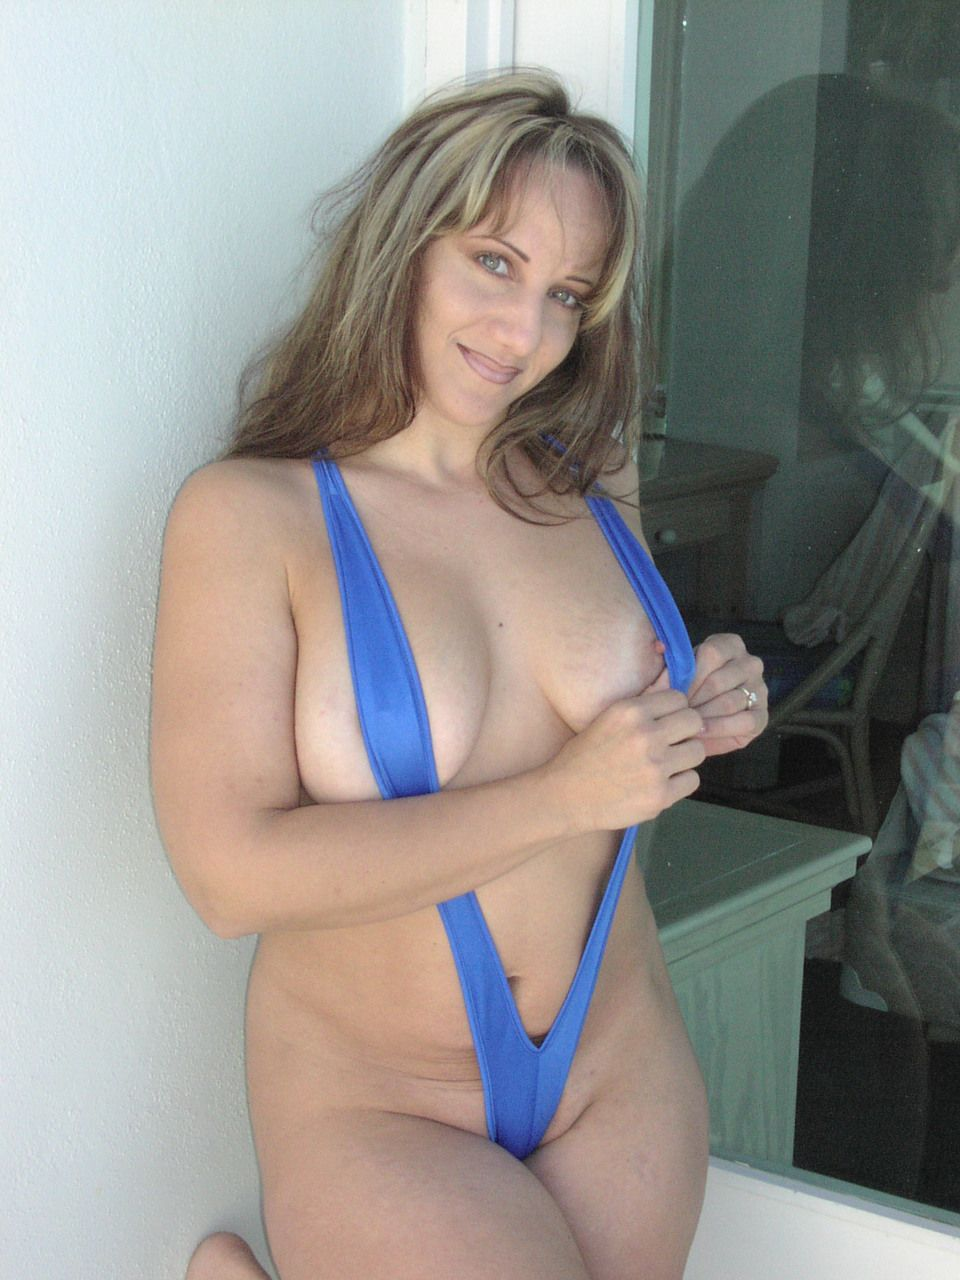 Milf swimsuit nude hottest star